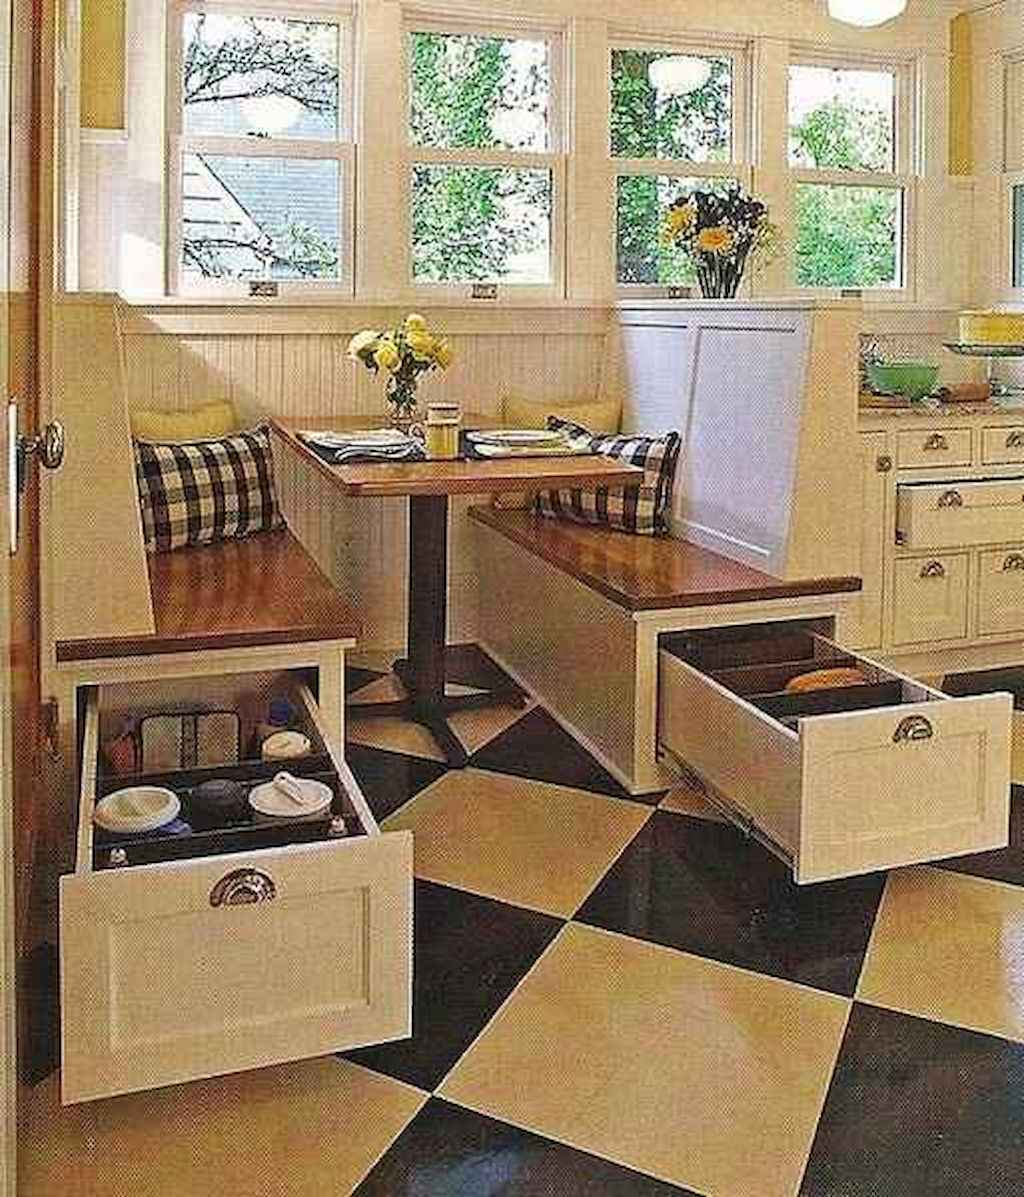 Best travel trailers remodel for rv living ideas (77)